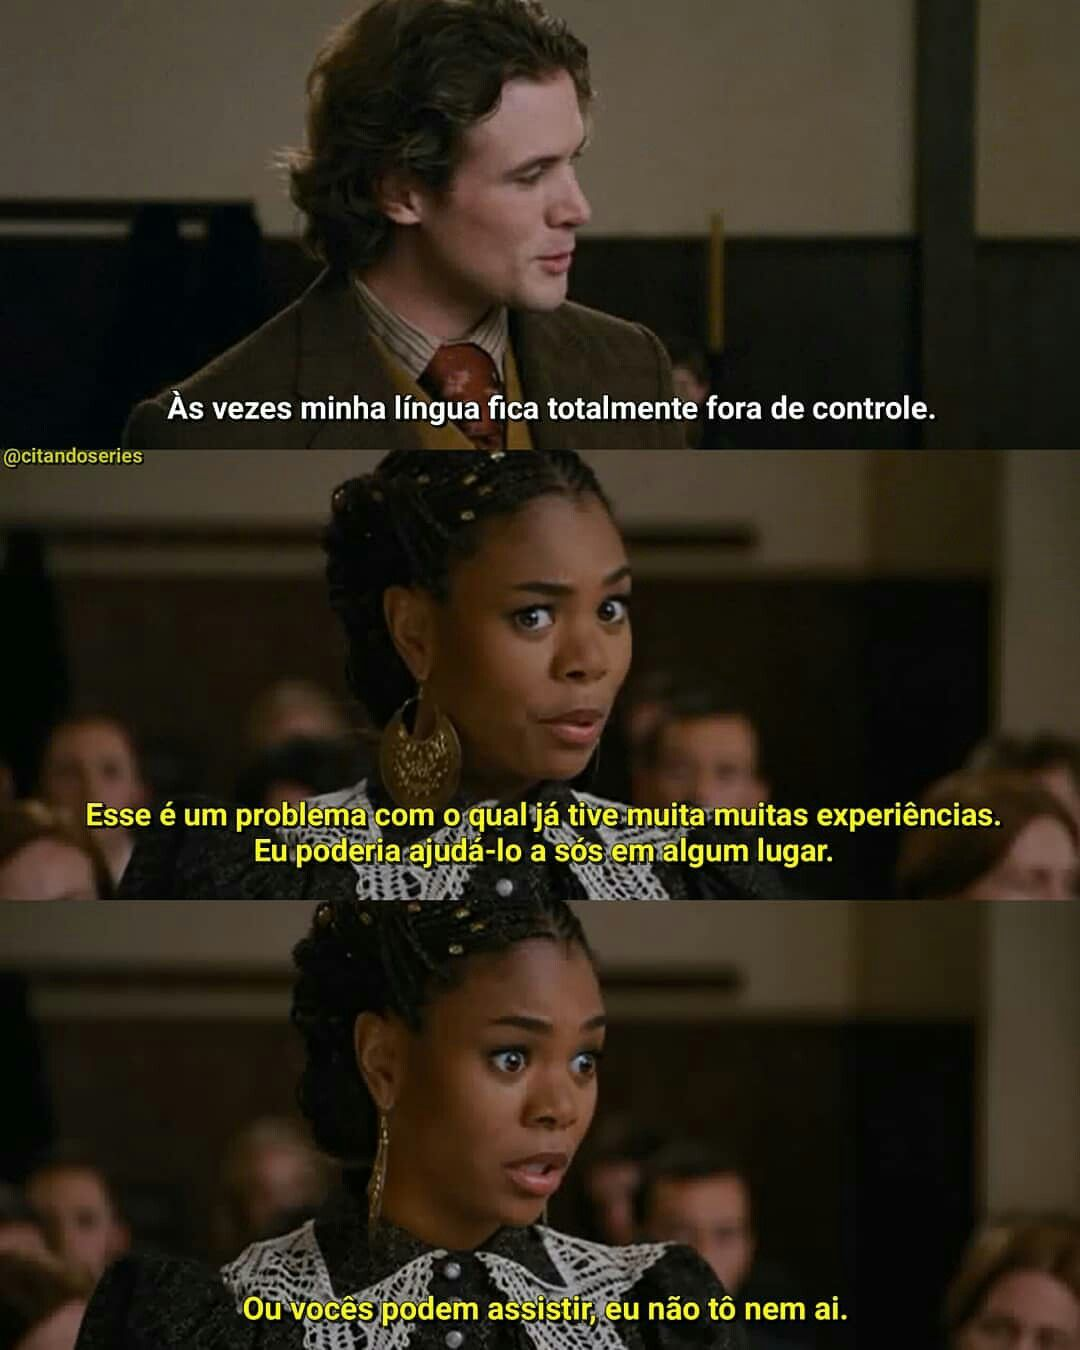 Pin By Alinezão On Movies And Series Frases De Filmes